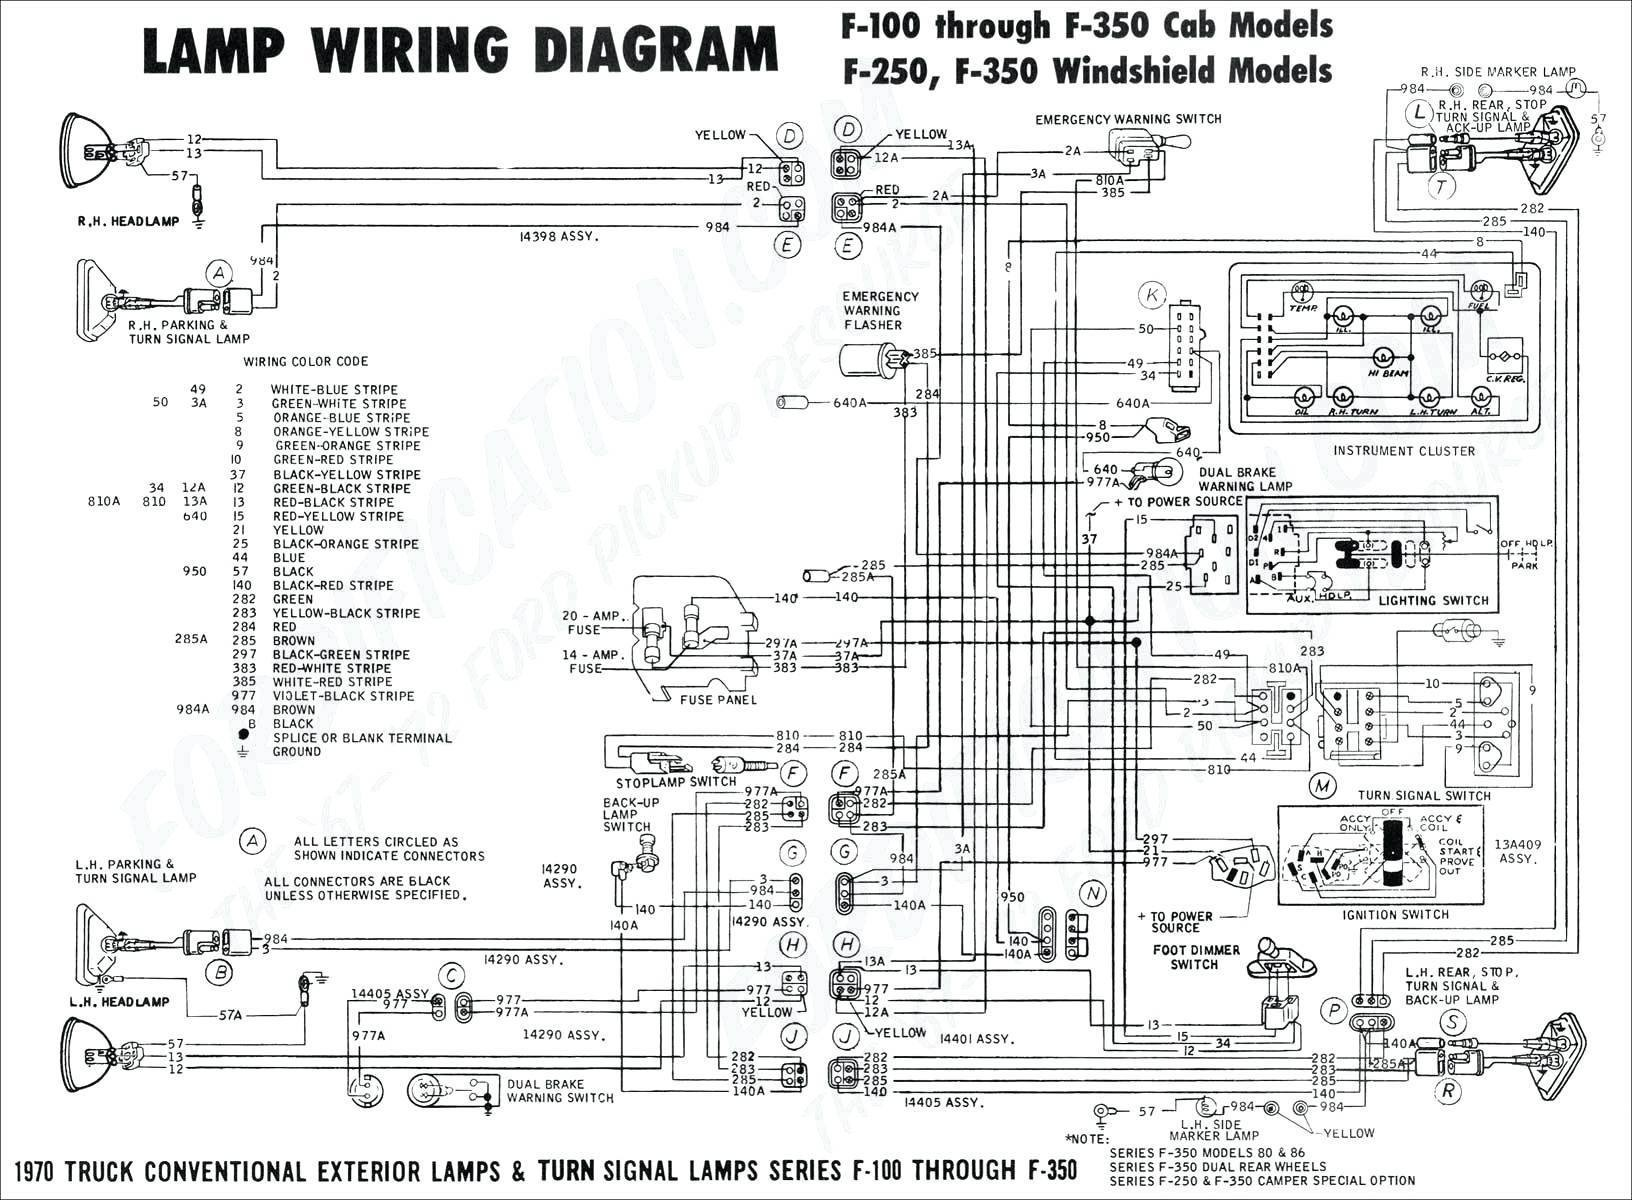 2001 Chevy Impala 3 8 Engine Diagram New 2001 Chevy Silverado Fuel Pump Designs Of 2001 Chevy Impala 3 8 Engine Diagram